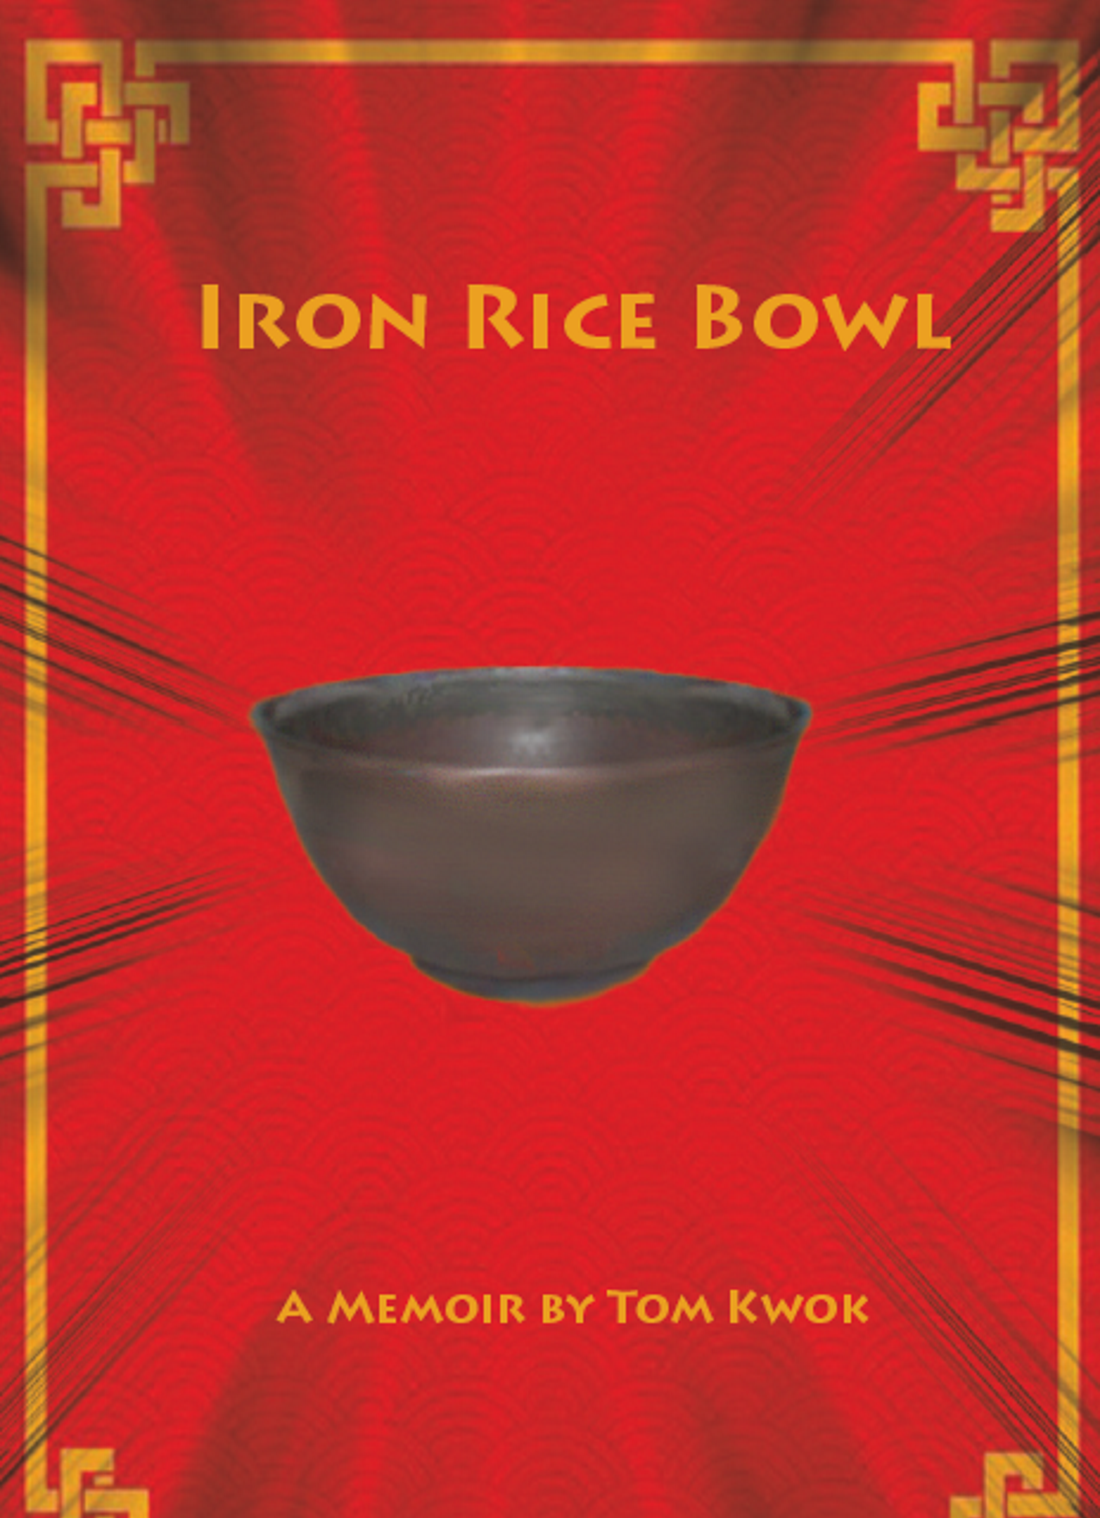 Iron Rice Bowl